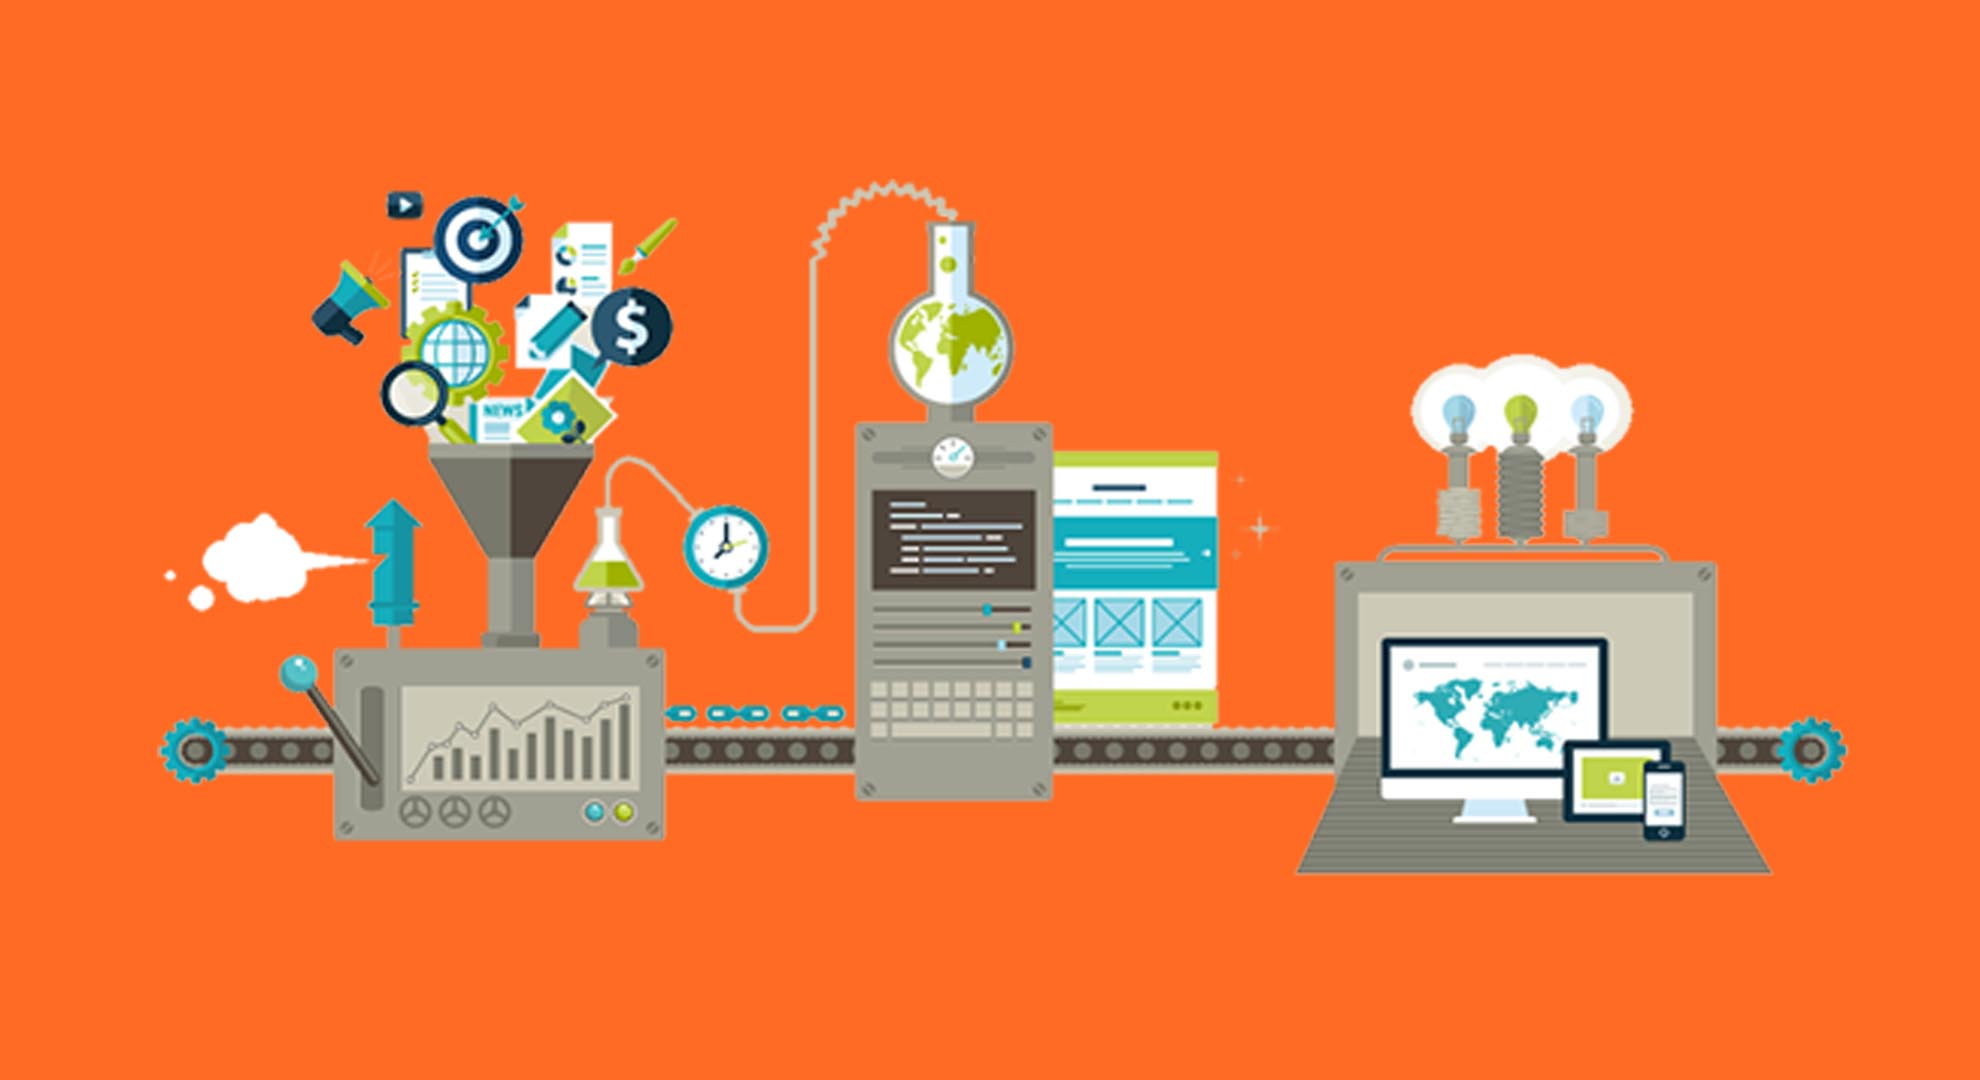 6 Tips To Make The Right Marketing Technology Investment